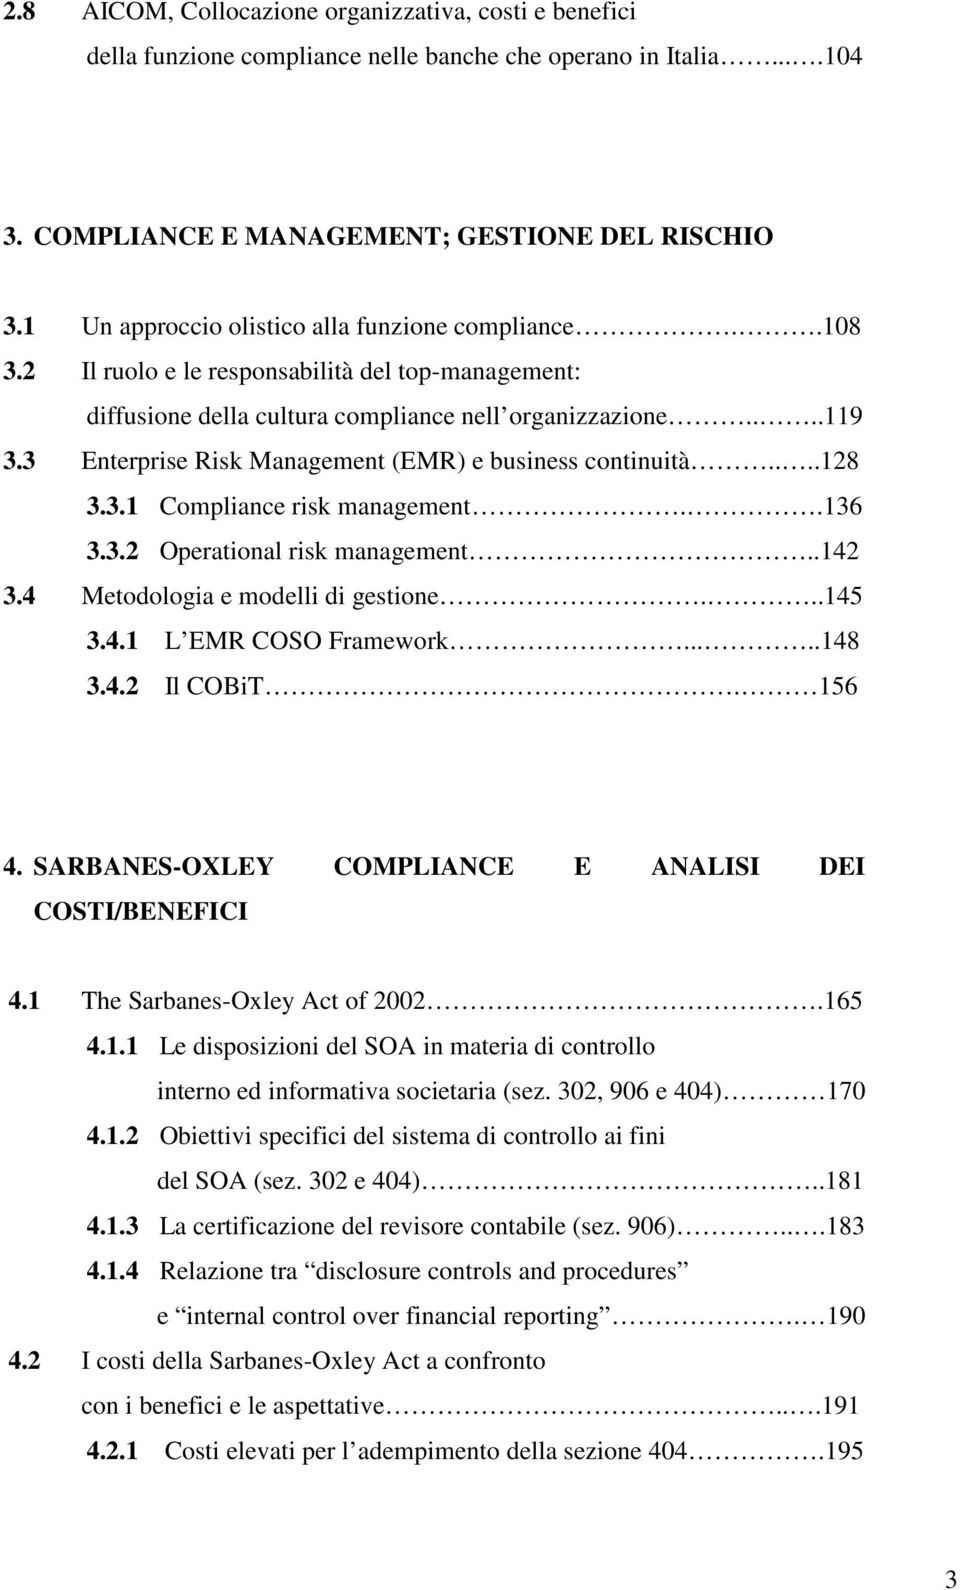 3 Enterprise Risk Management (EMR) e business continuità....128 3.3.1 Compliance risk management..136 3.3.2 Operational risk management..142 3.4 Metodologia e modelli di gestione...145 3.4.1 L EMR COSO Framework.